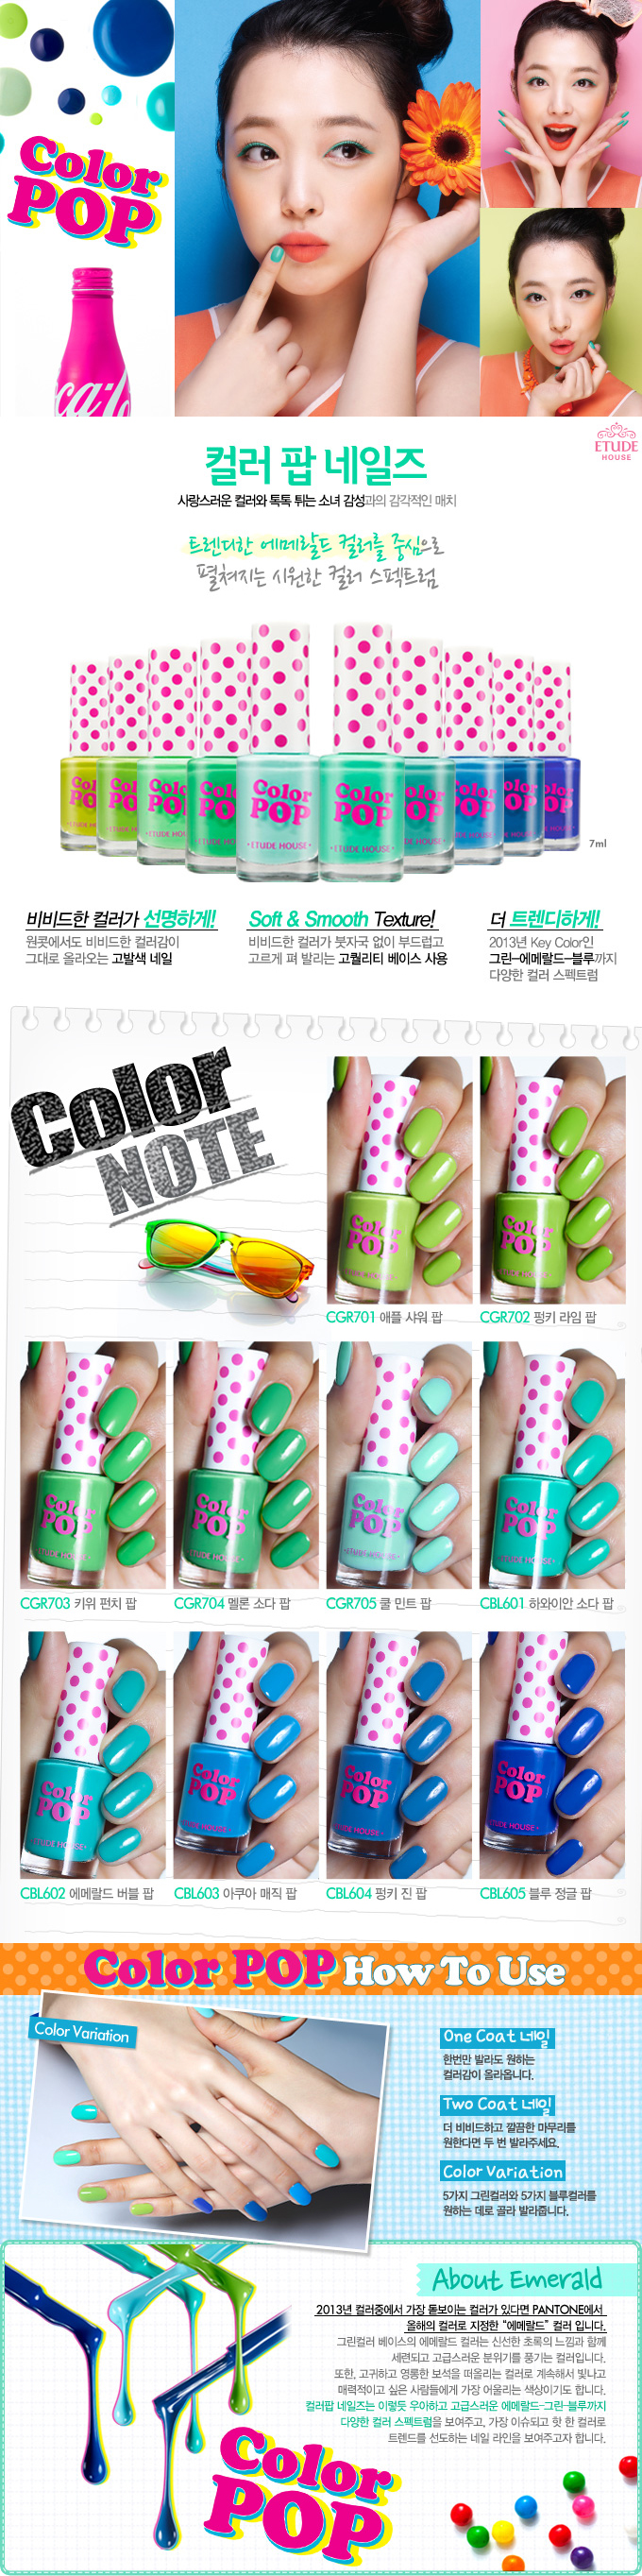 "ETUDE HOUSE ""Color Pop"" - Spring / Summer 2013 Collection."